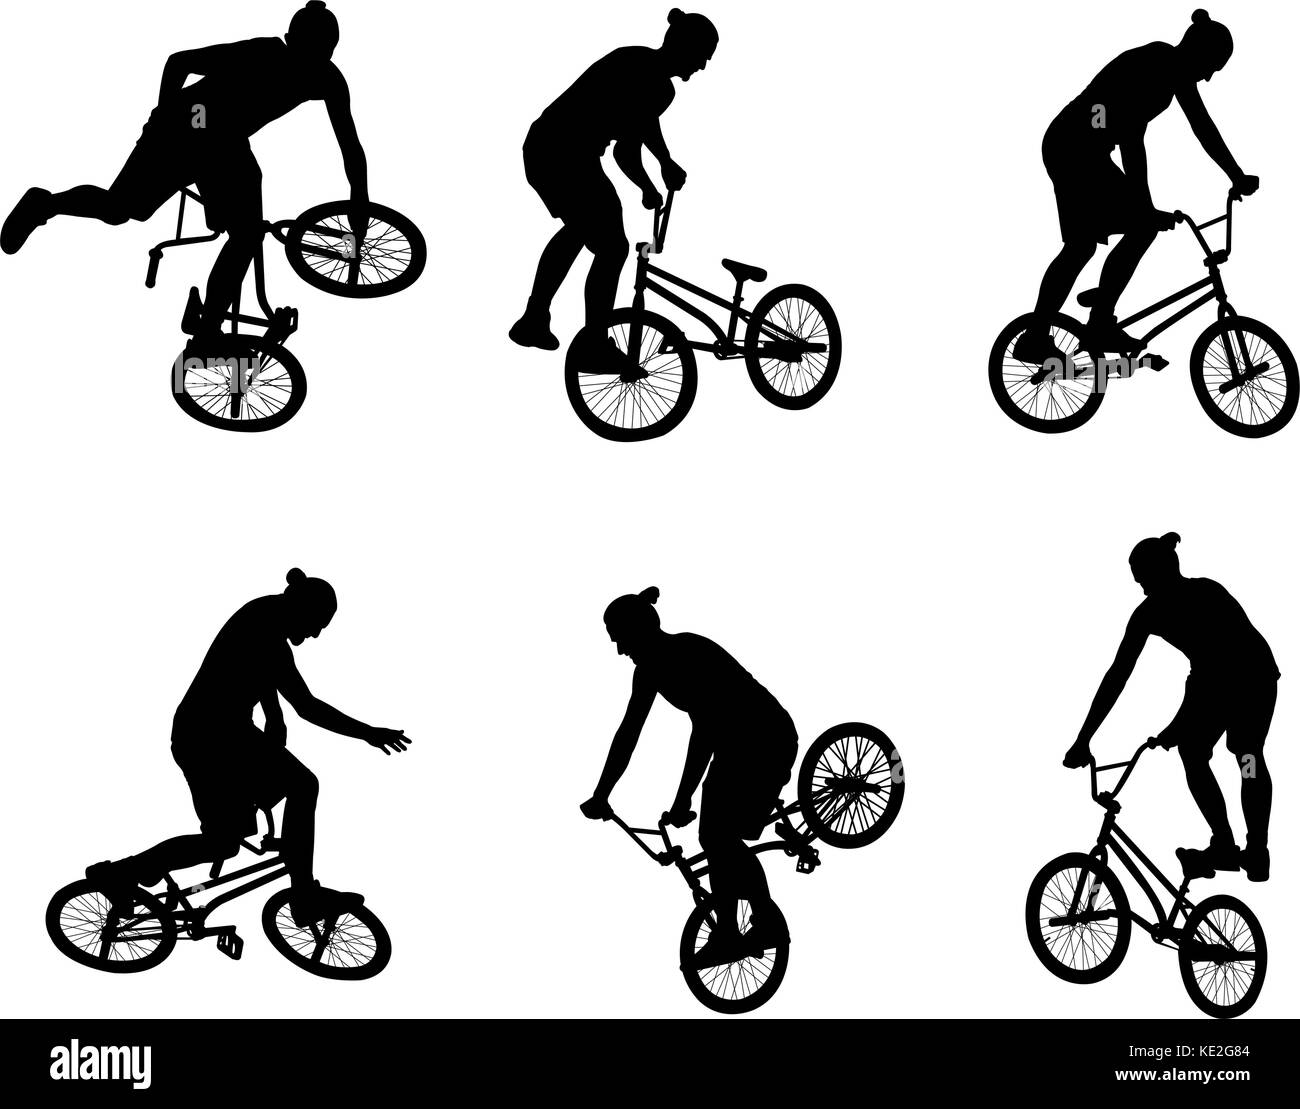 stunt bicyclist silhouettes - vector - Stock Vector